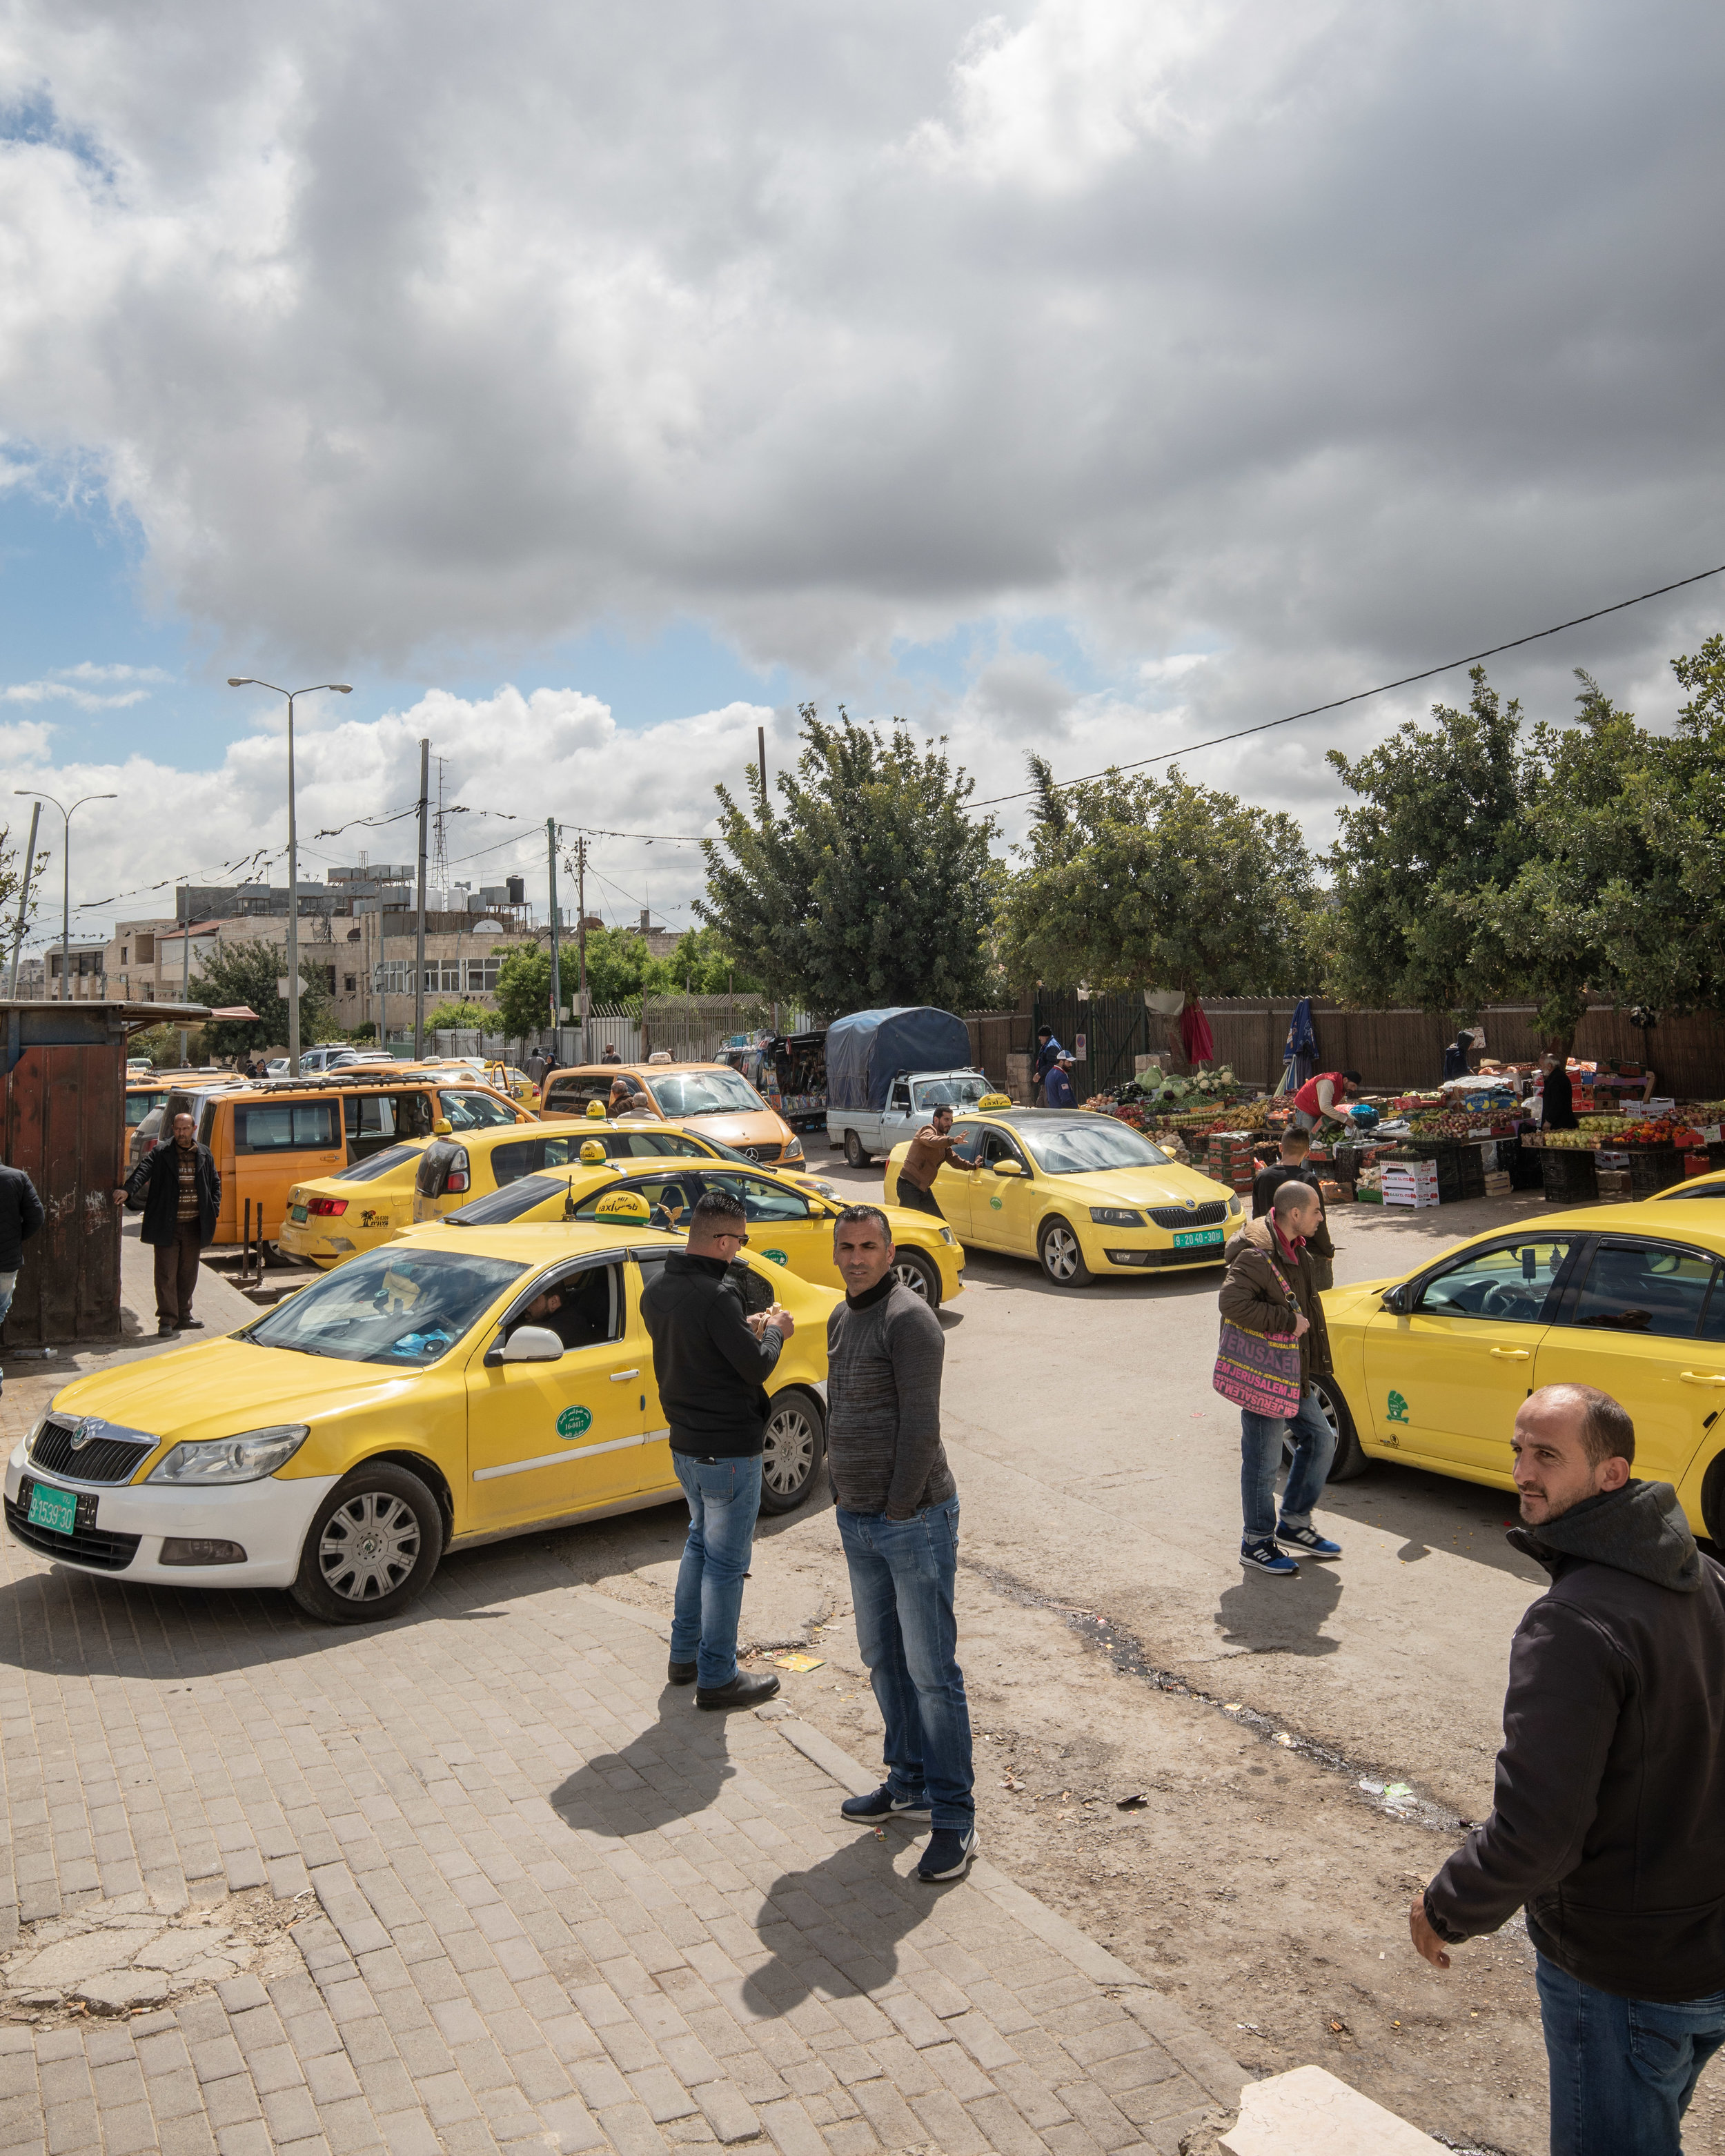 The taxi mafia at the border. Walk straight through and try not to engage any of them